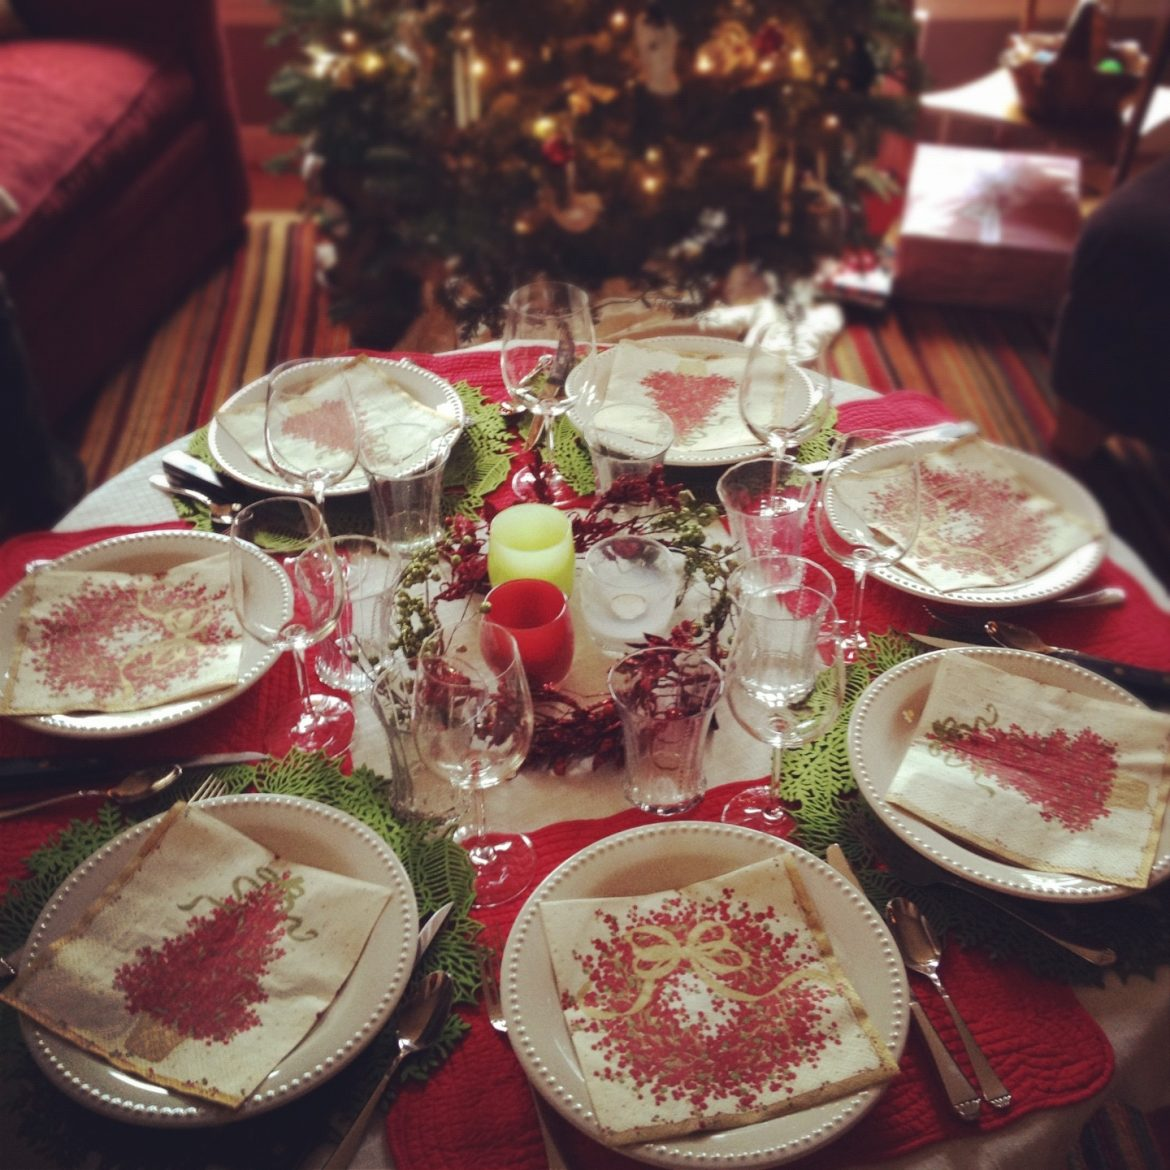 How to get your house ready for christmas - great tips How to get your house ready for christmas – great tips christmas table